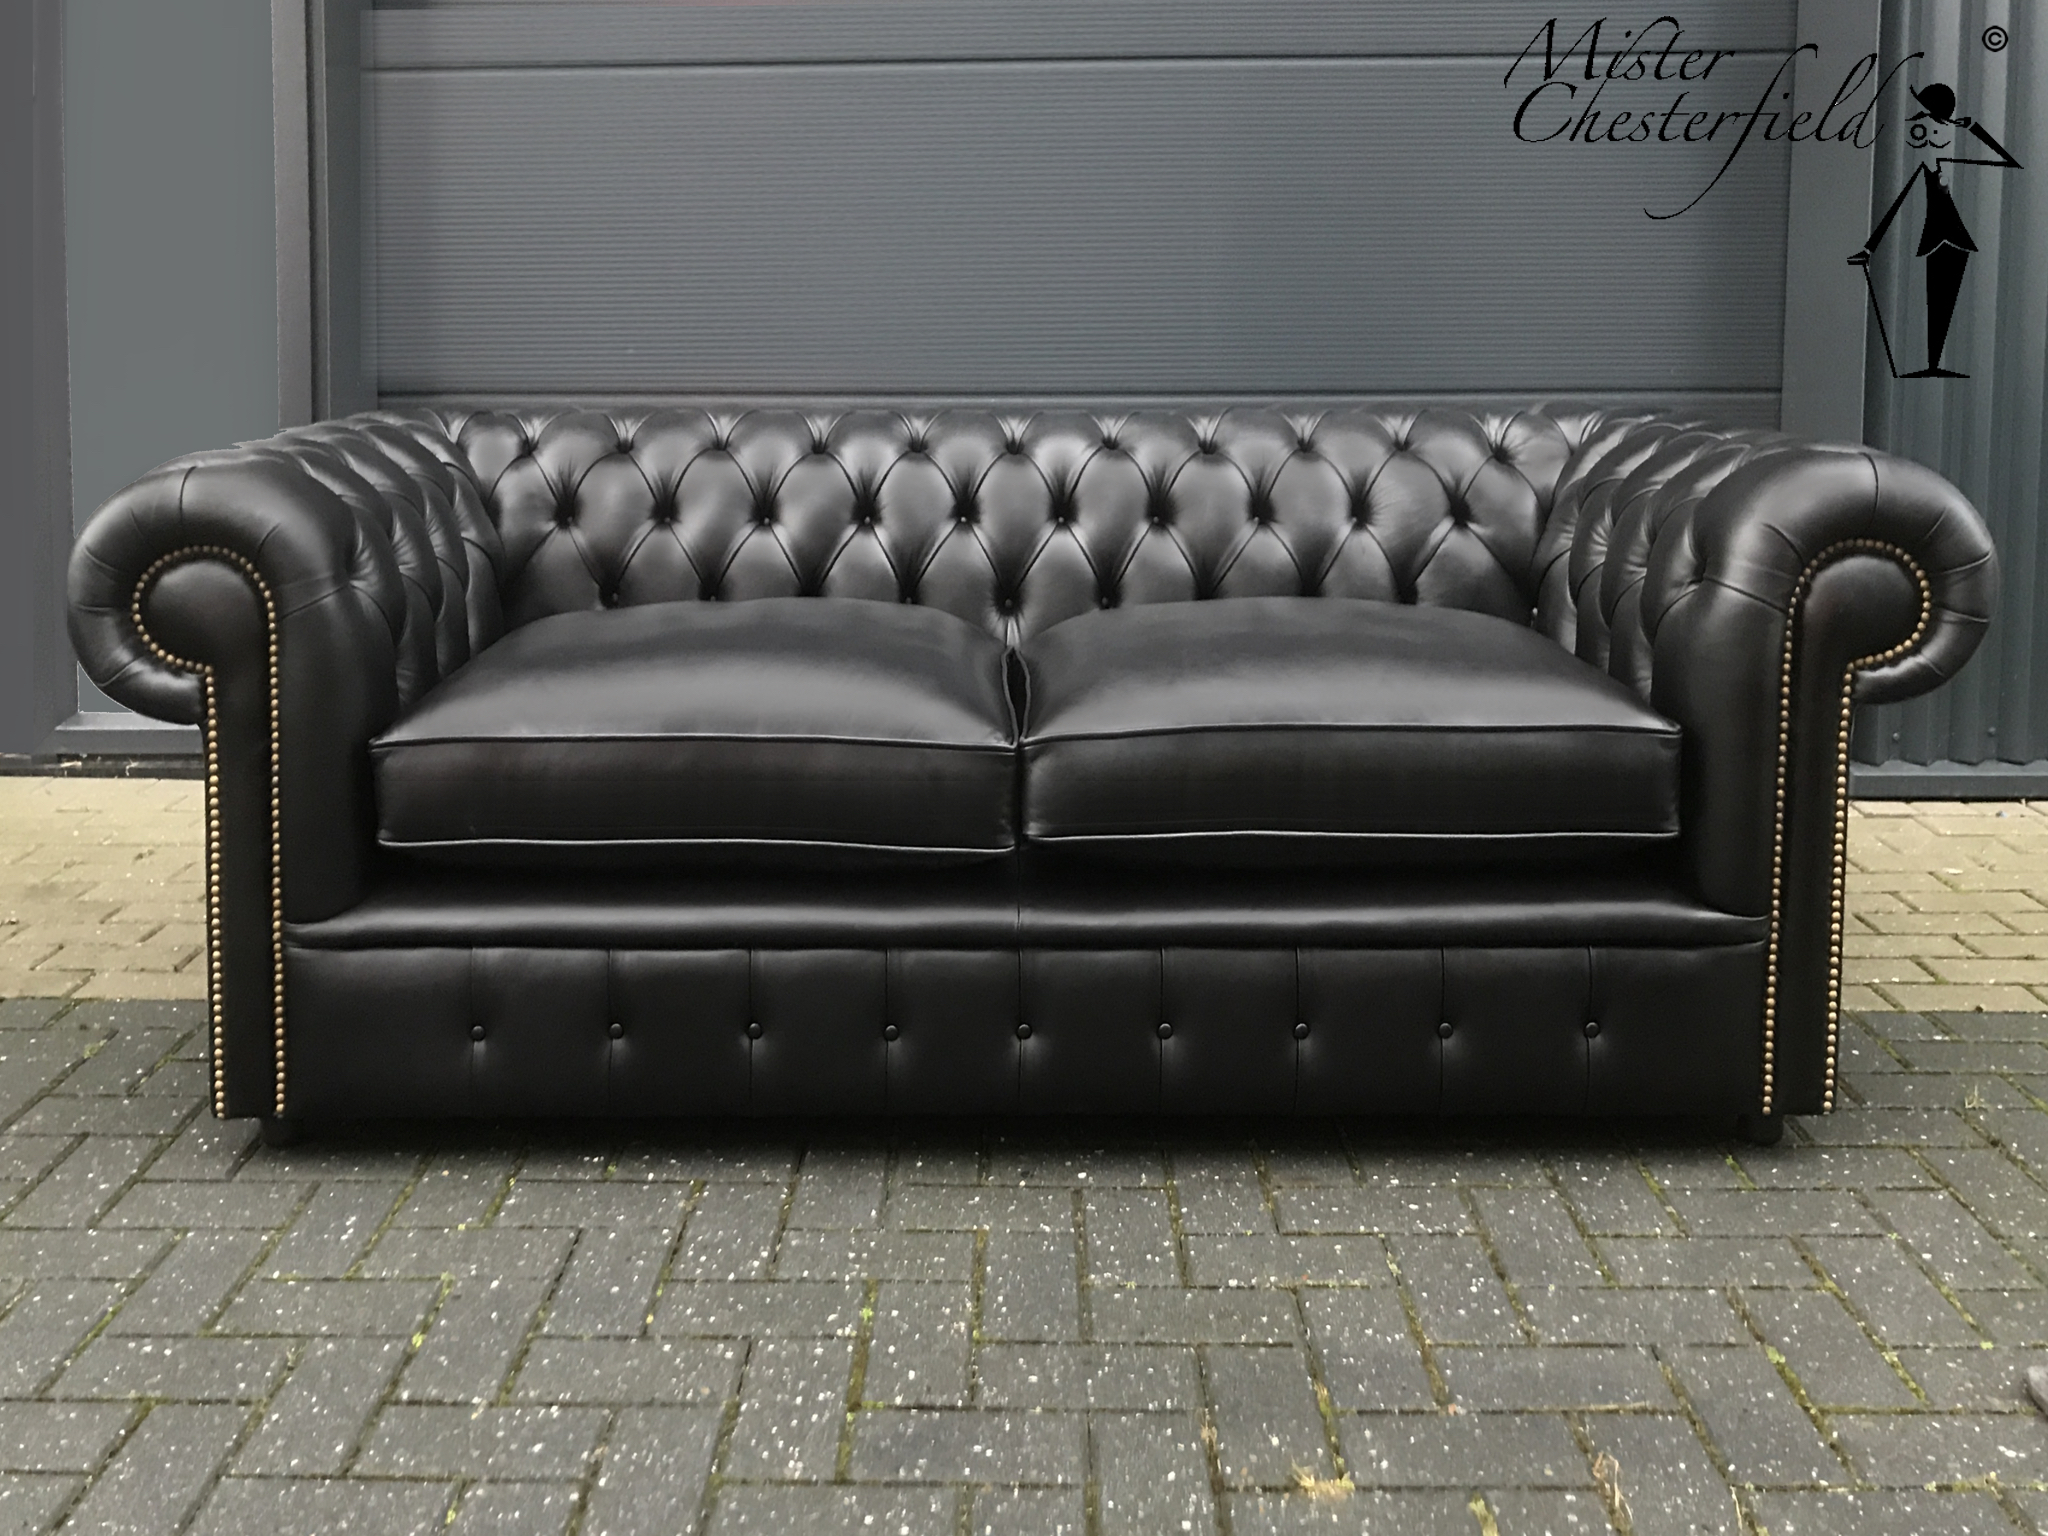 chesterfield furniture gouda